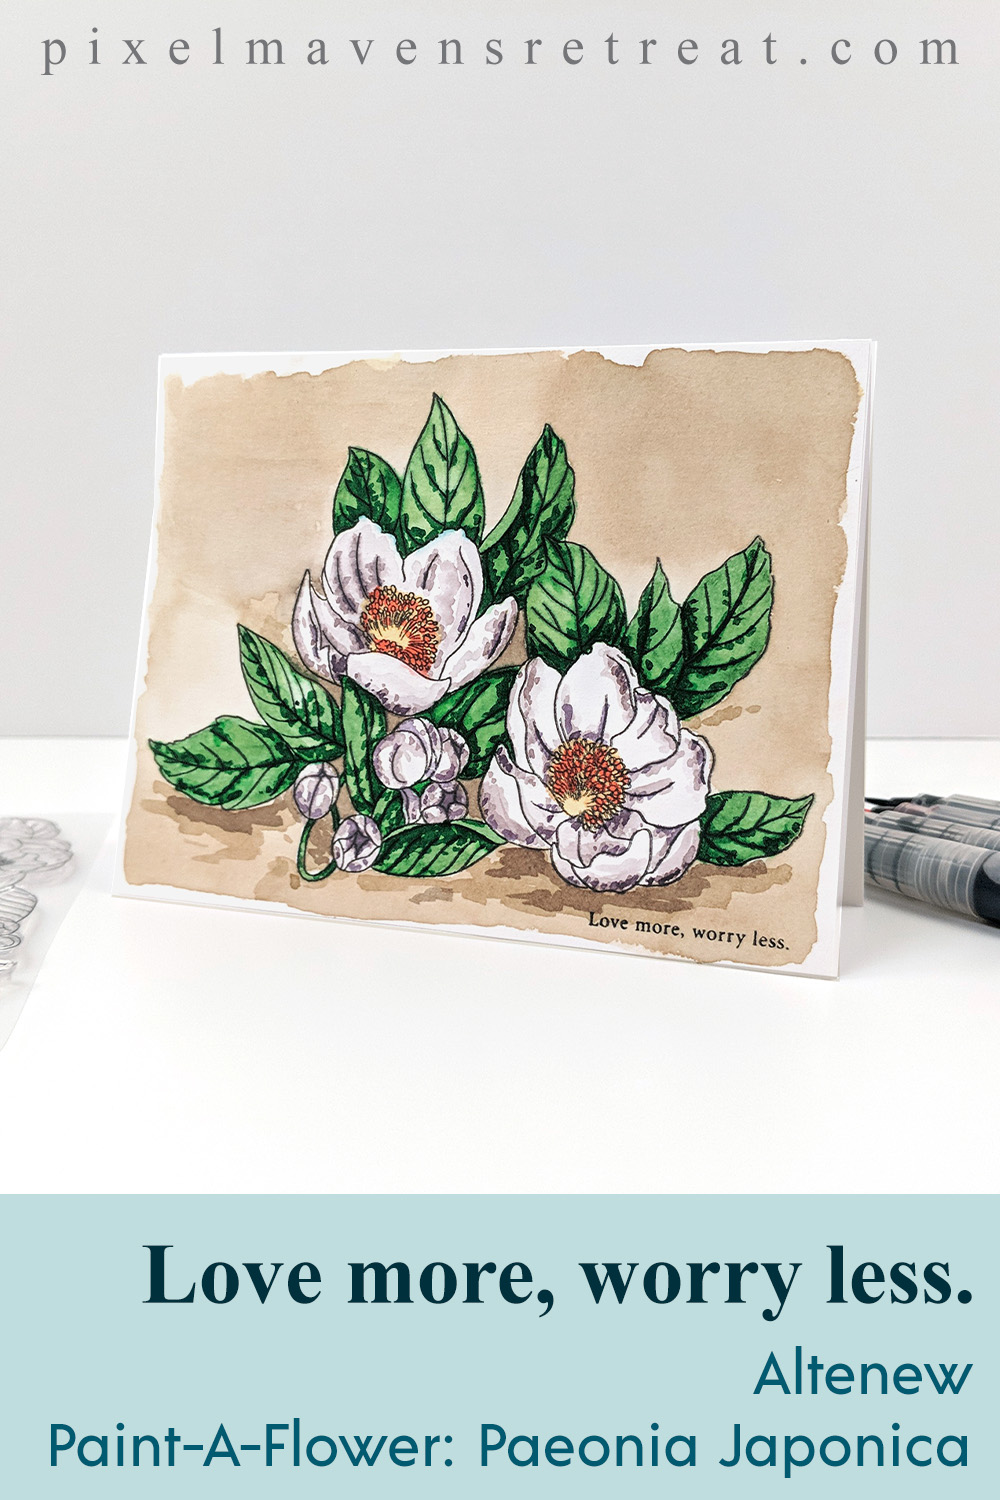 Altenew Paint-A-Flower: Paeonia Japonica Release Blog Hop + Giveaway